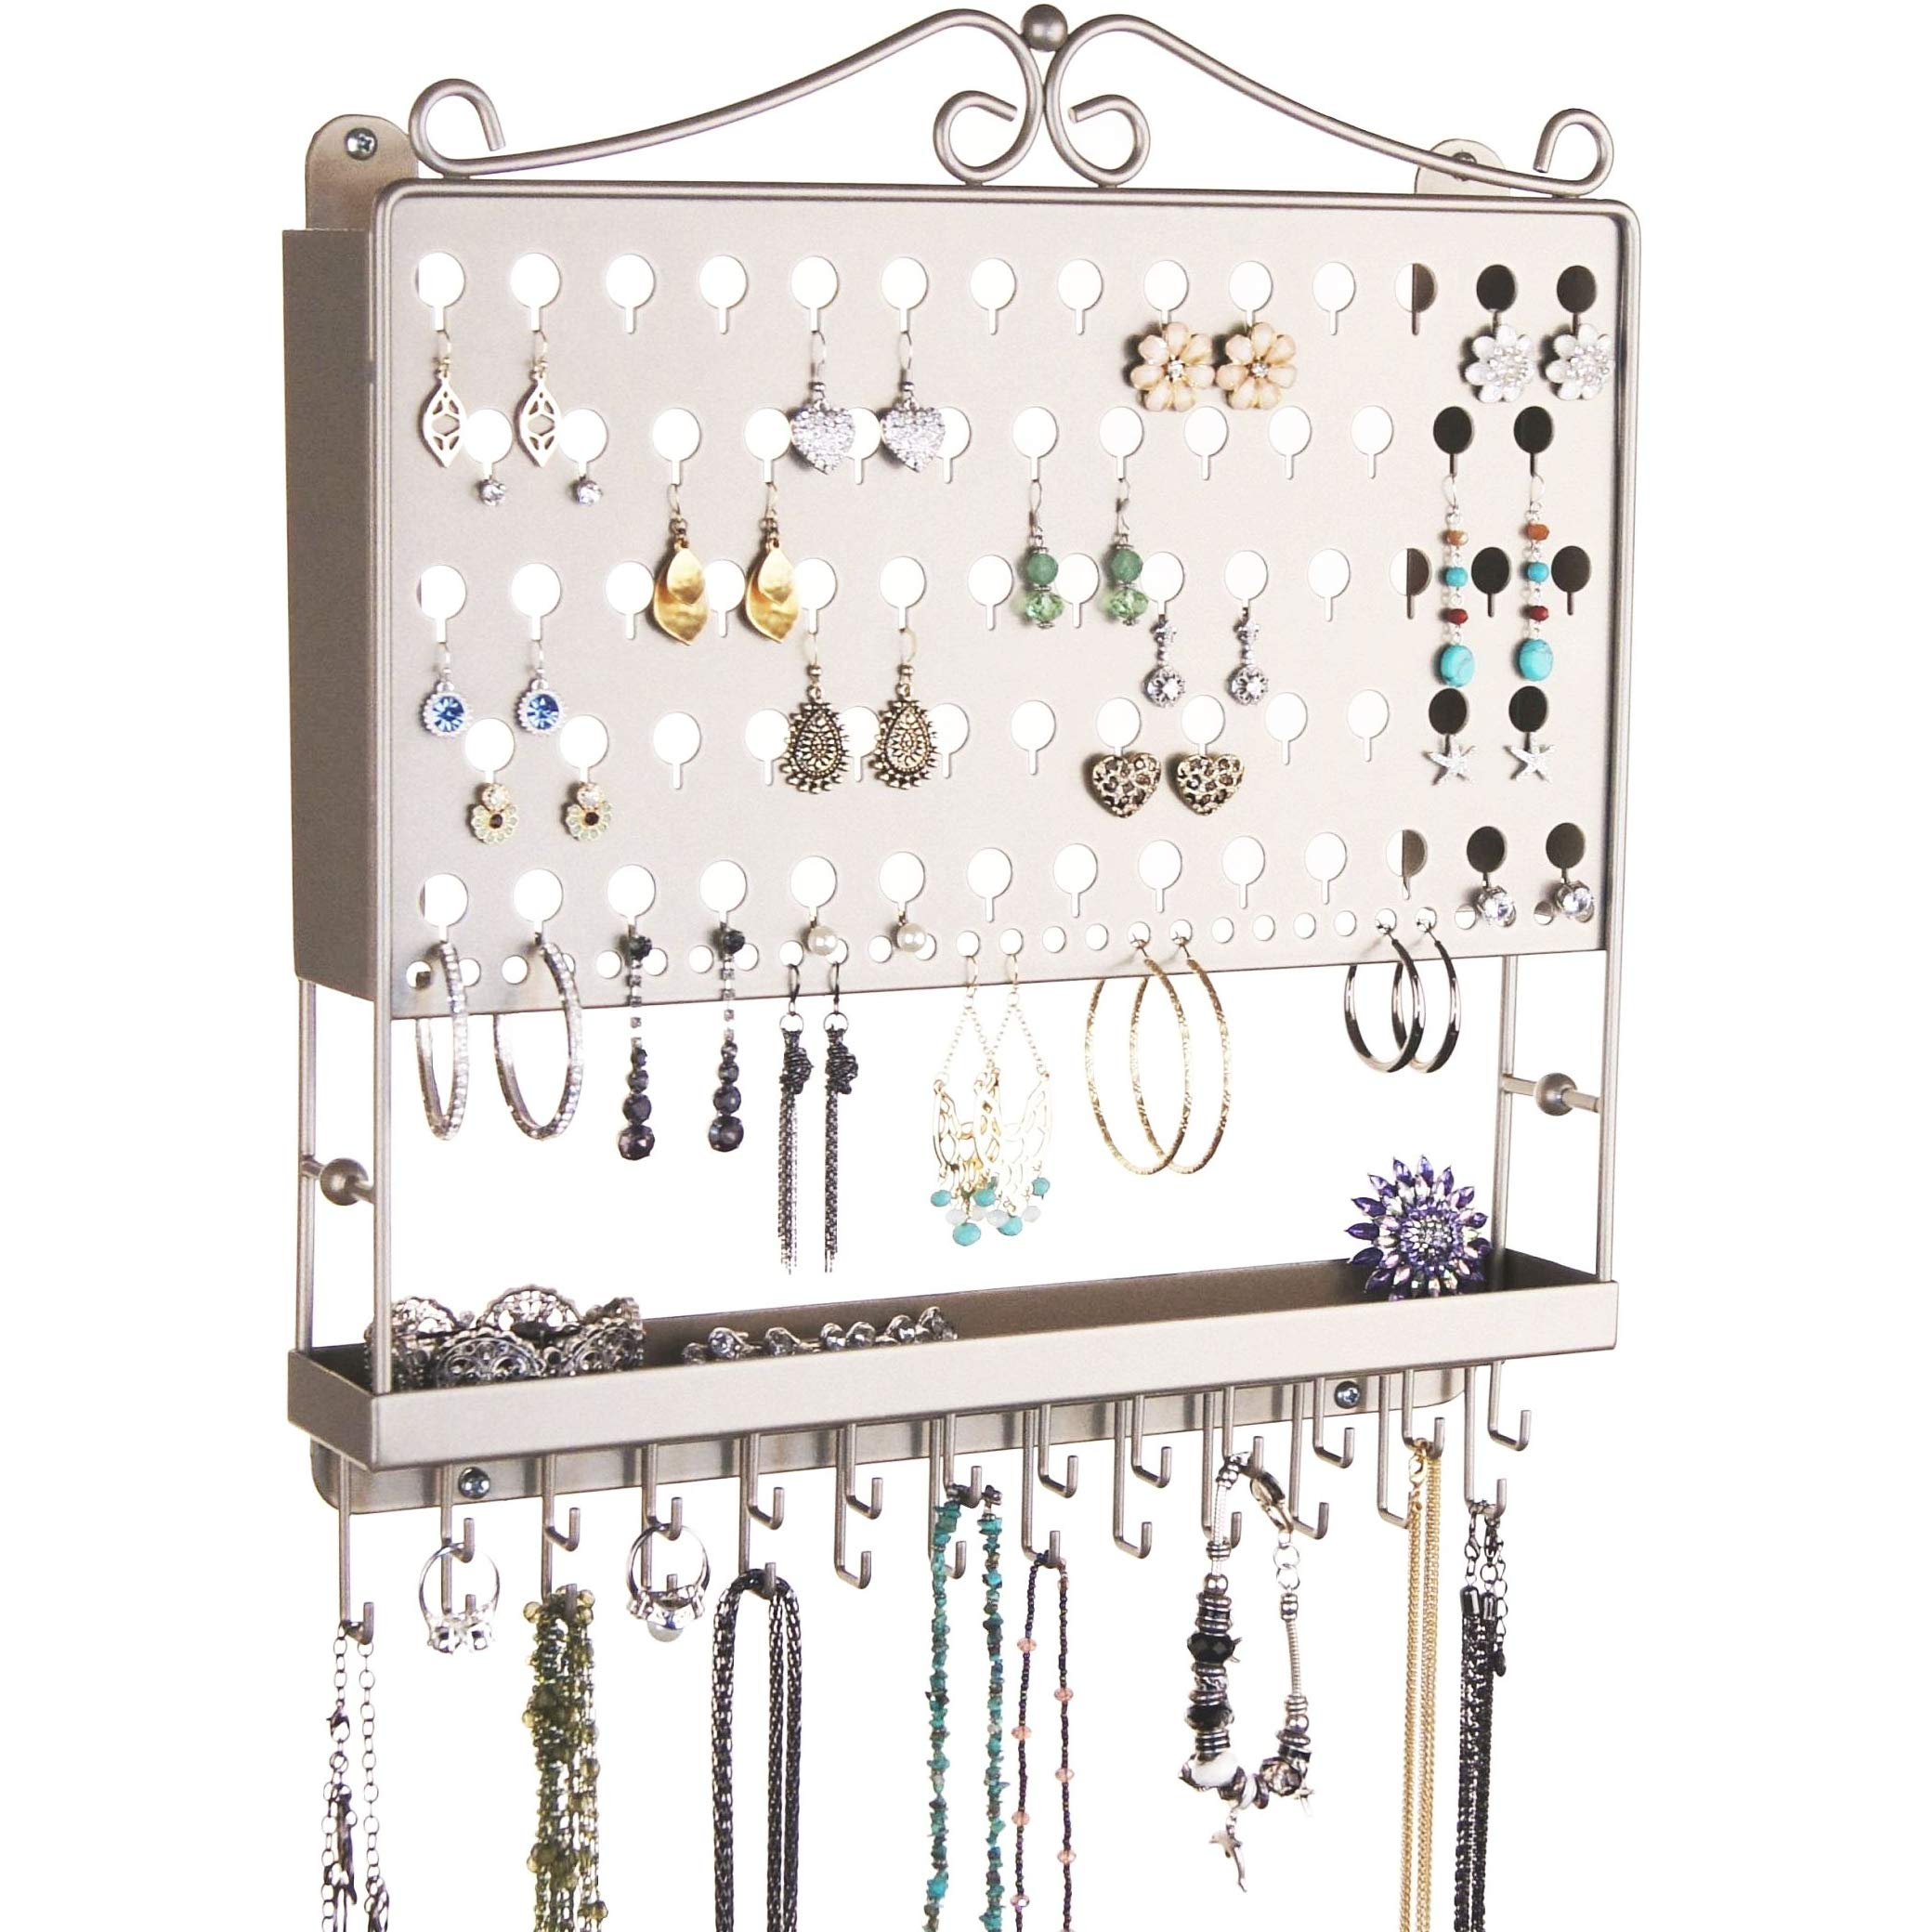 Angelynn's Hanging Jewelry Organizer Earring Holder Wall Closet Necklace Storage Bracelet Rack, Satin Nickel Silver